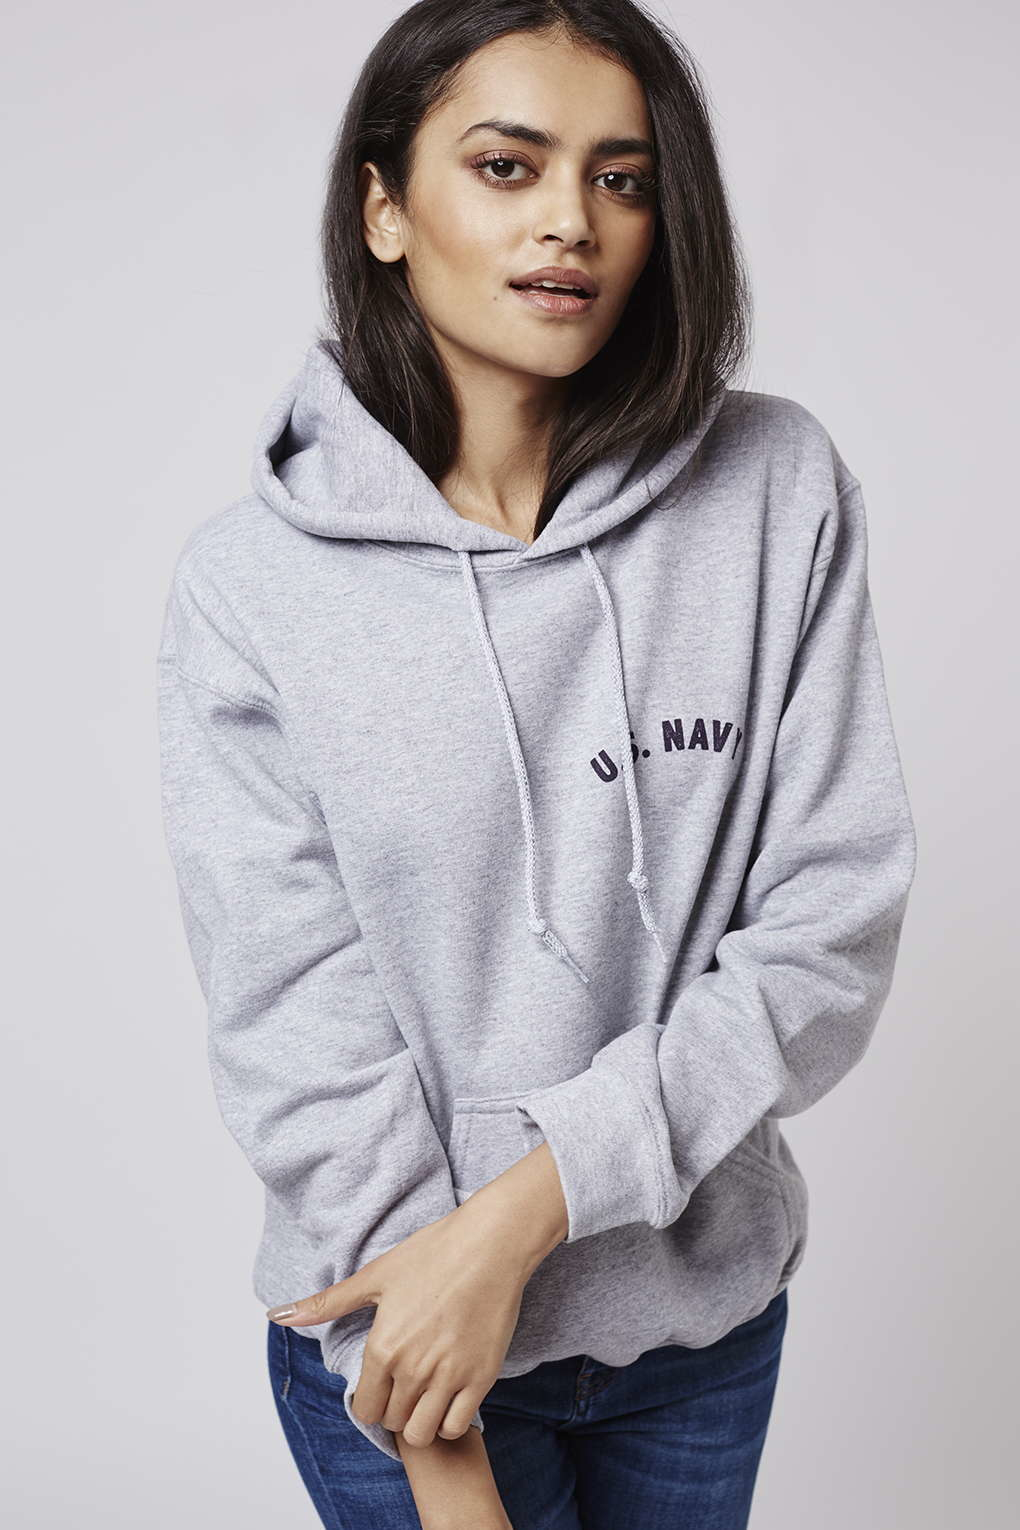 Topshop Us Navy Hoodie By Tee And Cake in Gray | Lyst